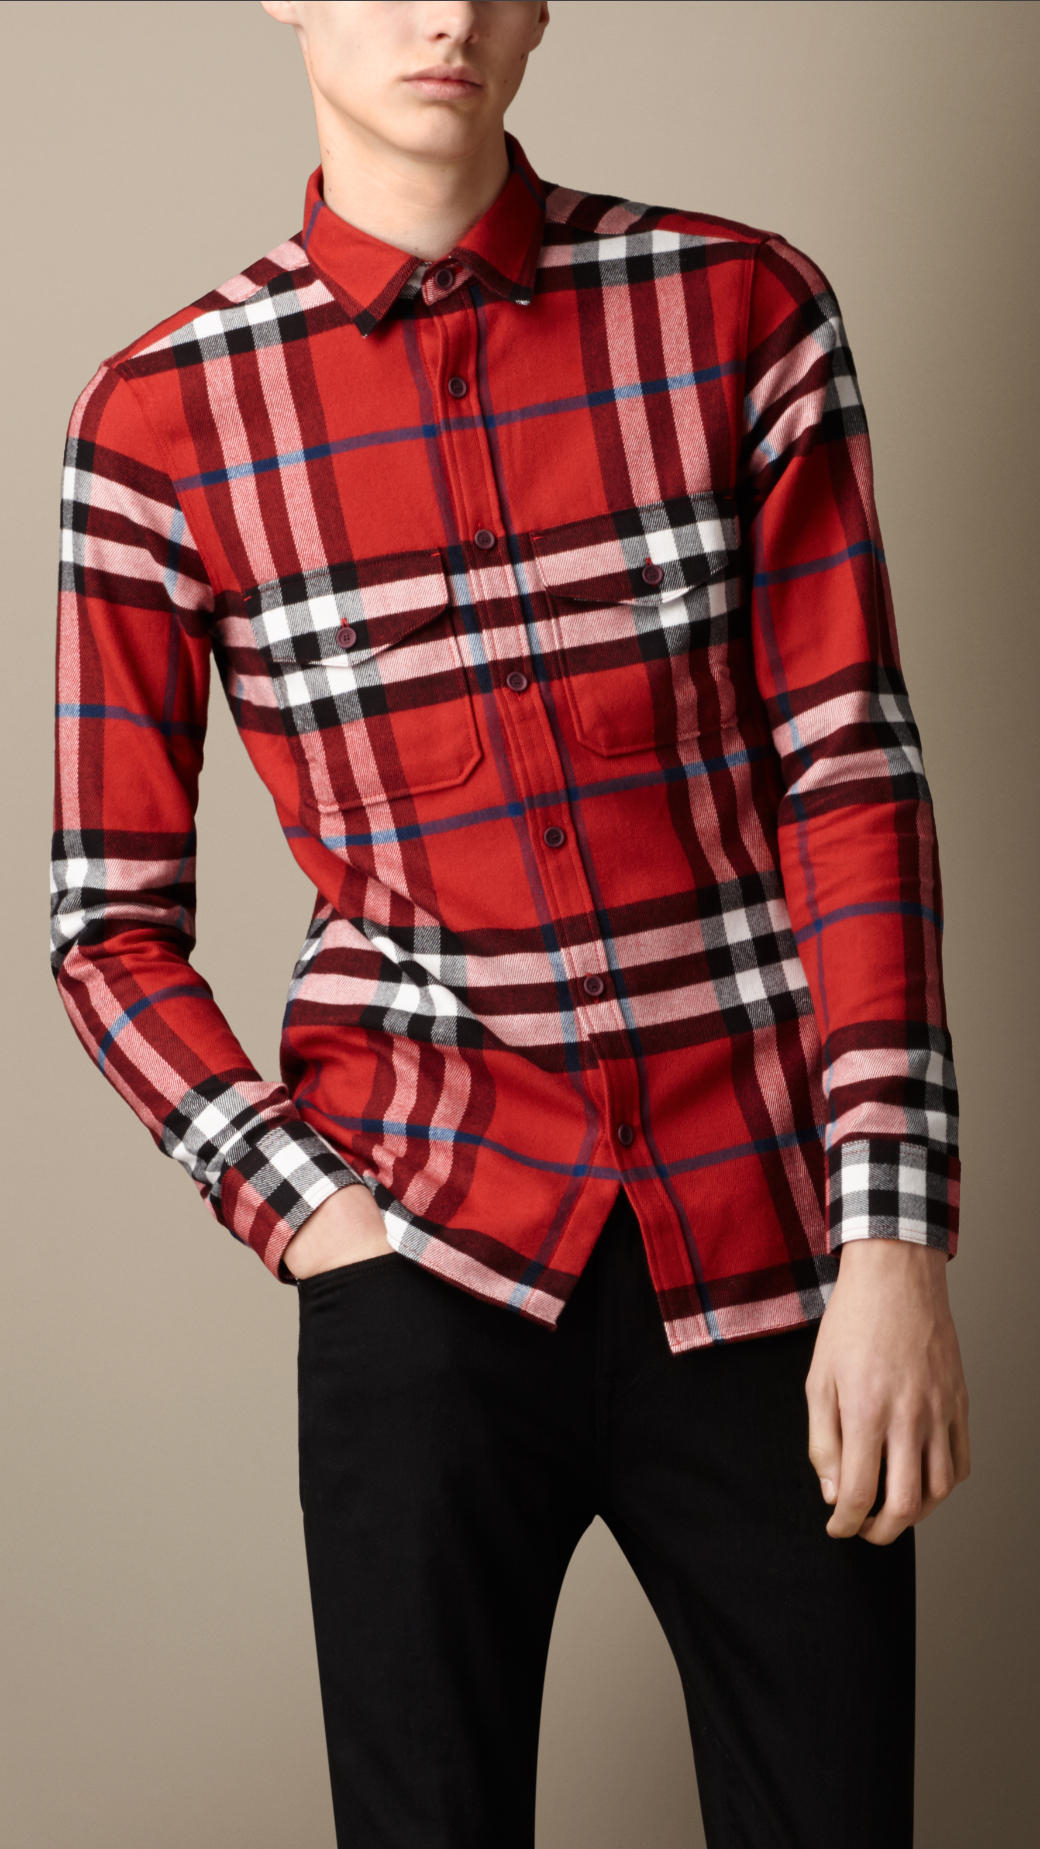 Prada Mens Shirts